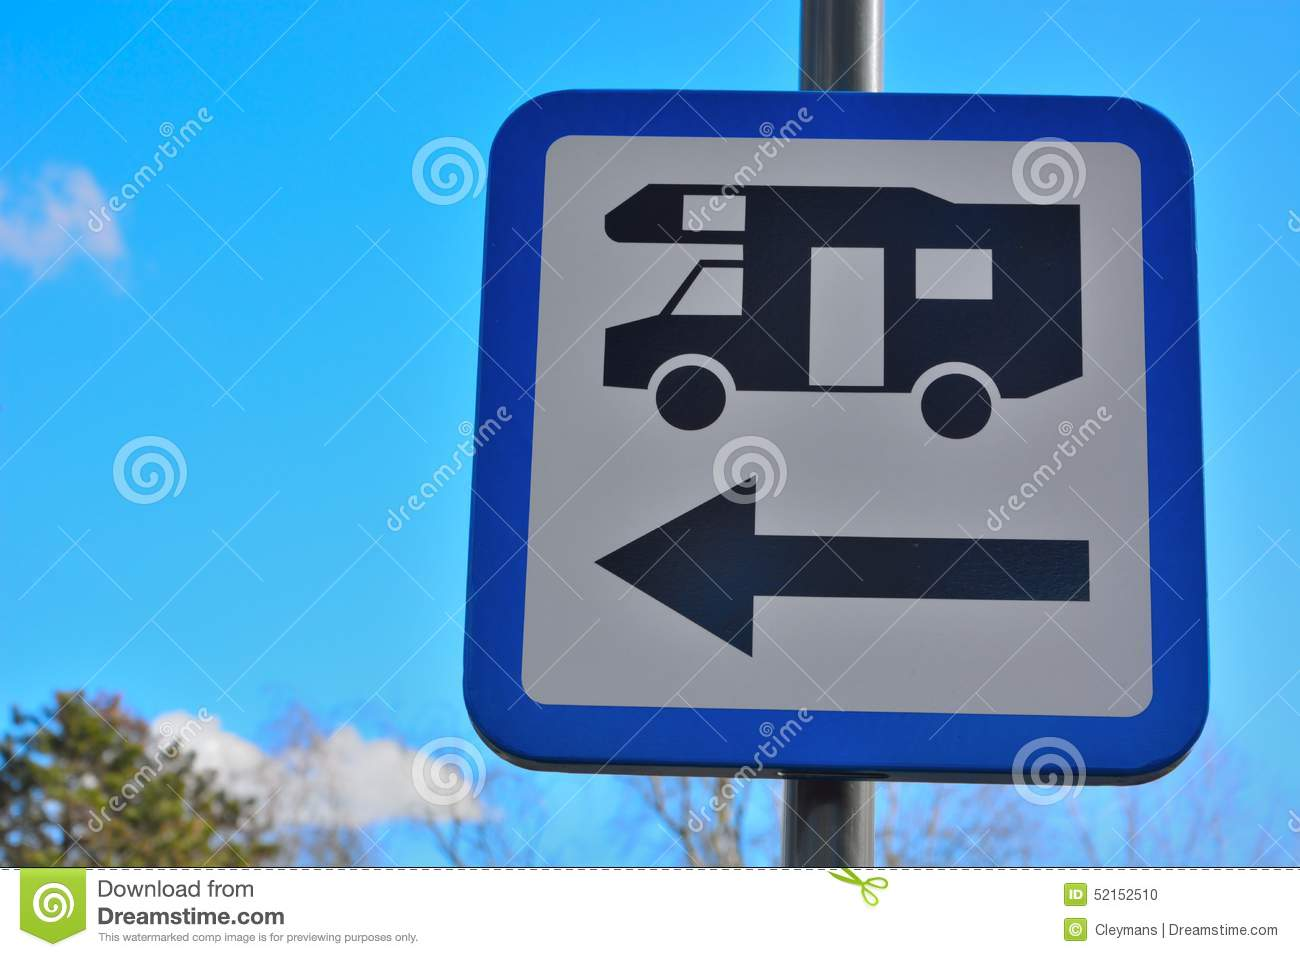 Funny Trafic Plate Sign Stock Photo